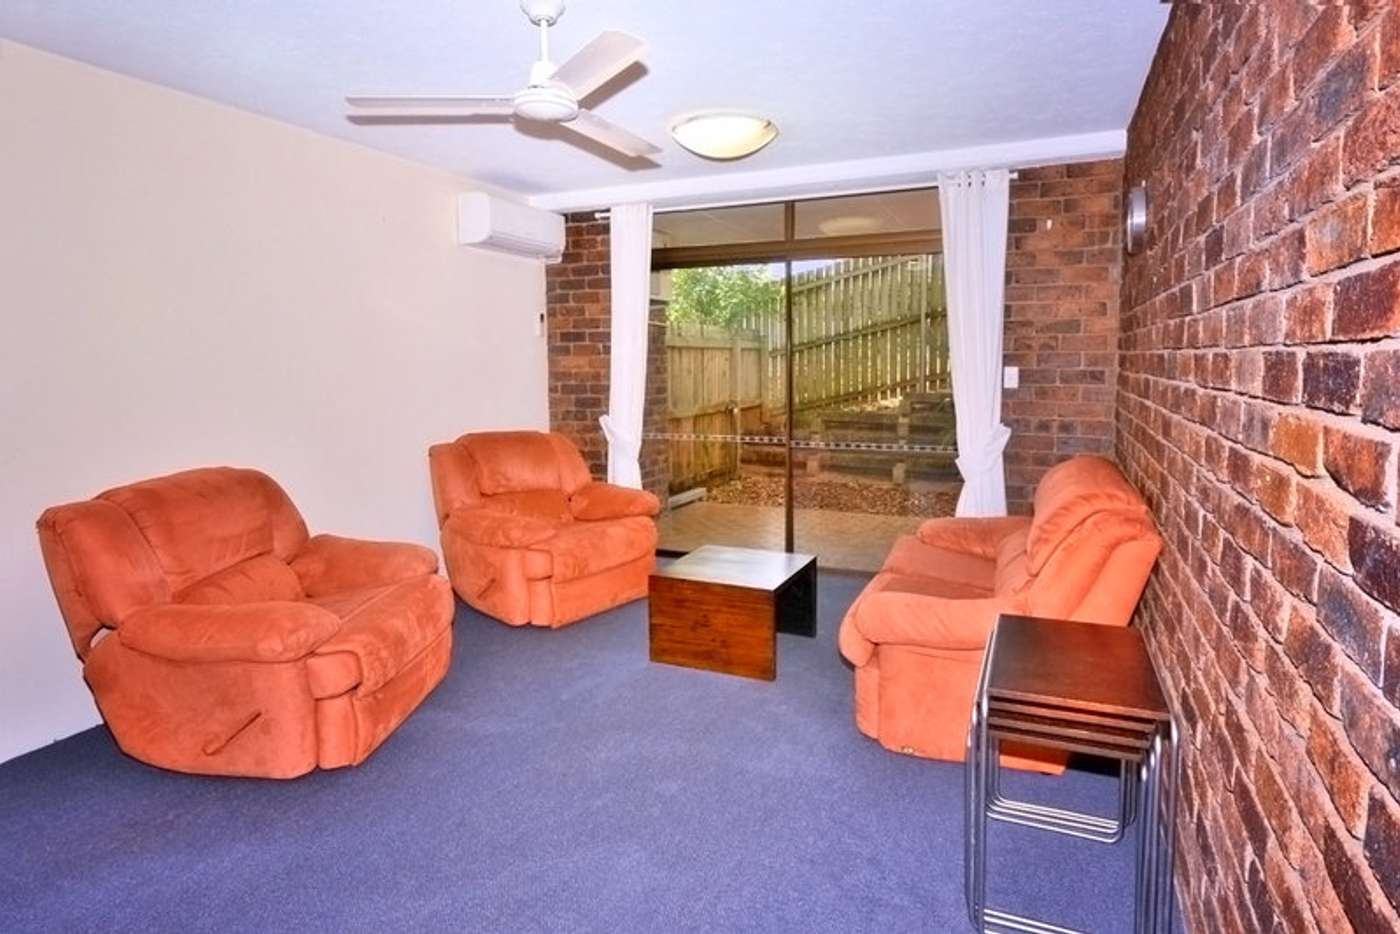 Main view of Homely apartment listing, 2/24 Underhill Av, Indooroopilly QLD 4068